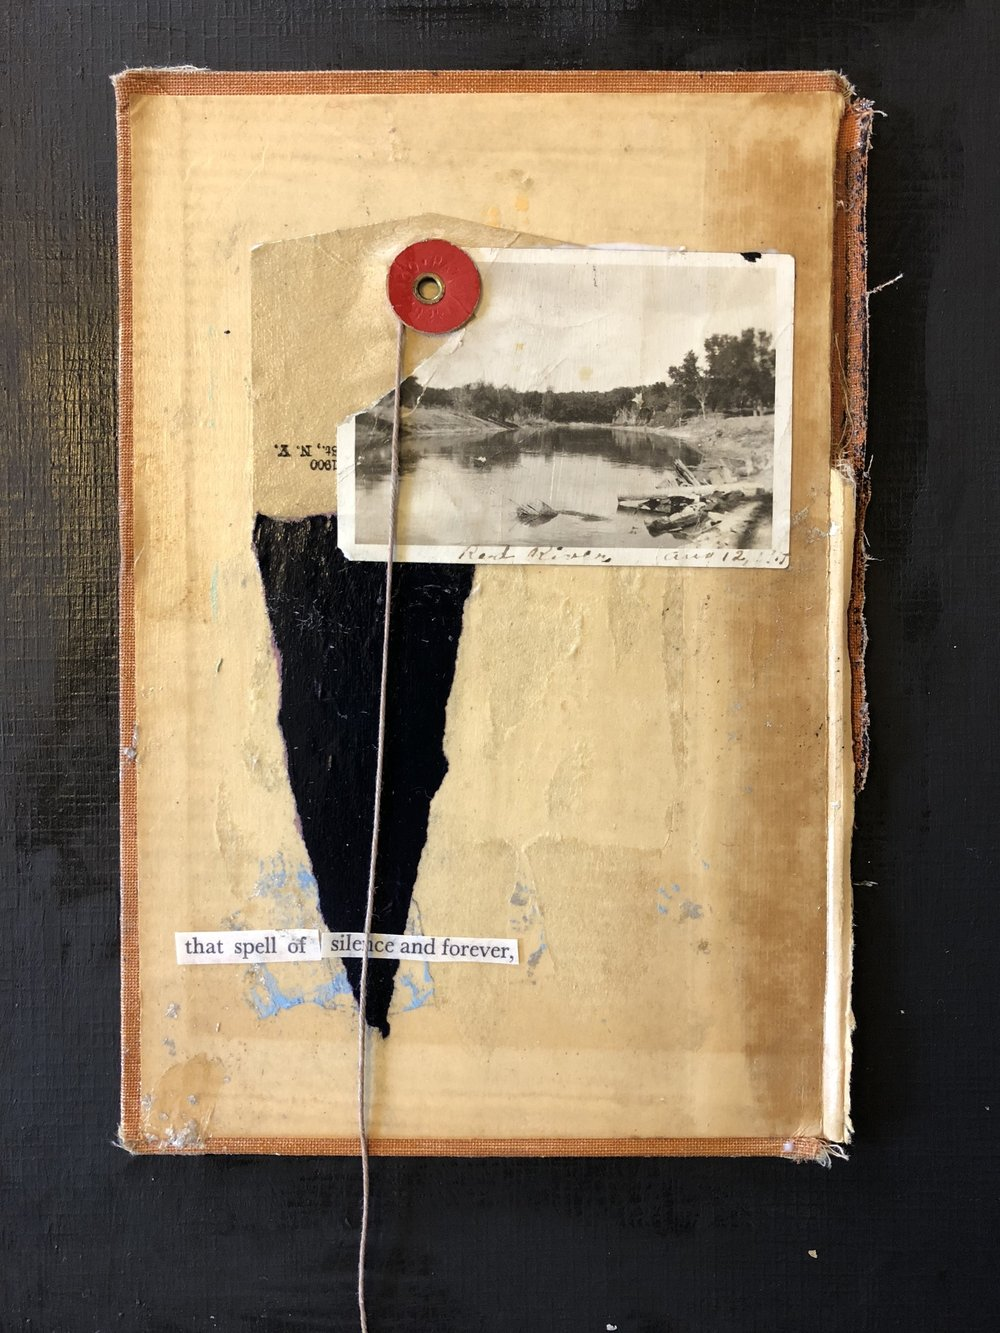 LAUREN DOUGLAS  - South Milwaukee, WI   The Spell of Silence And Forever   acrylics, photograph, paper, book cover, SOLD